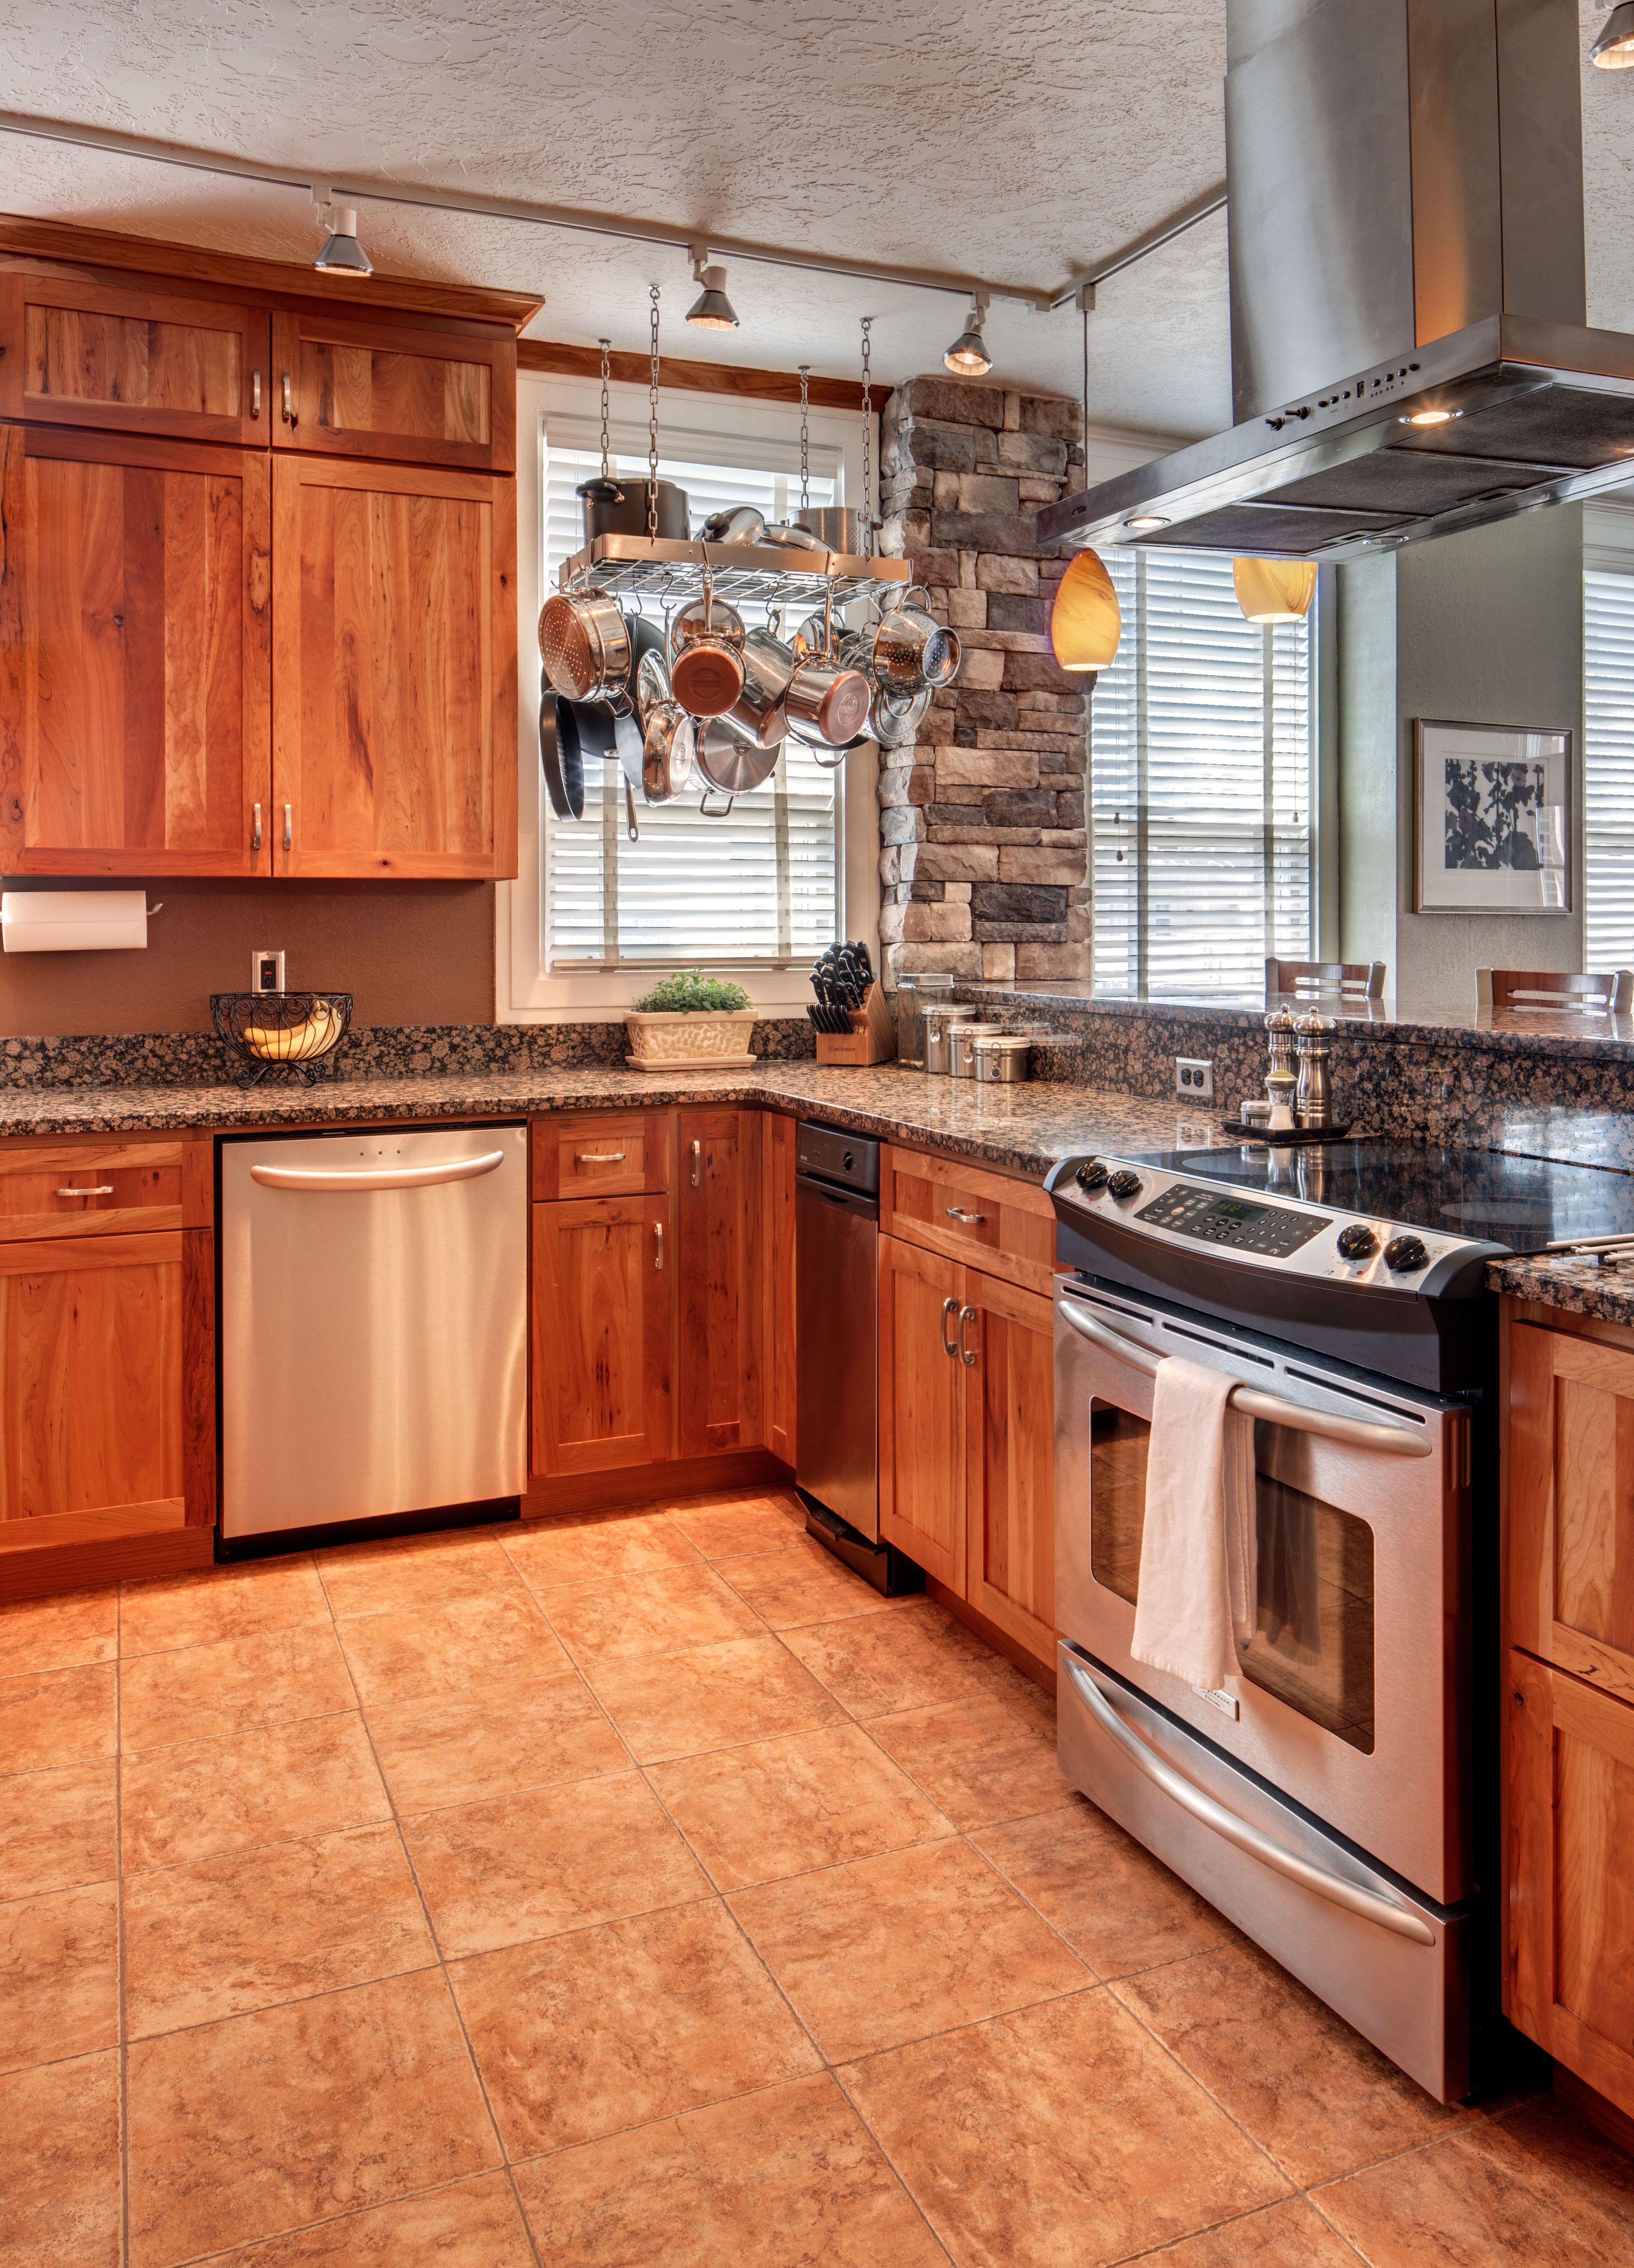 Crown Cabinets Clearcreek Knotty Cherry Natural Rustic Remodel Classic Kitchen Design Crown Cabinets